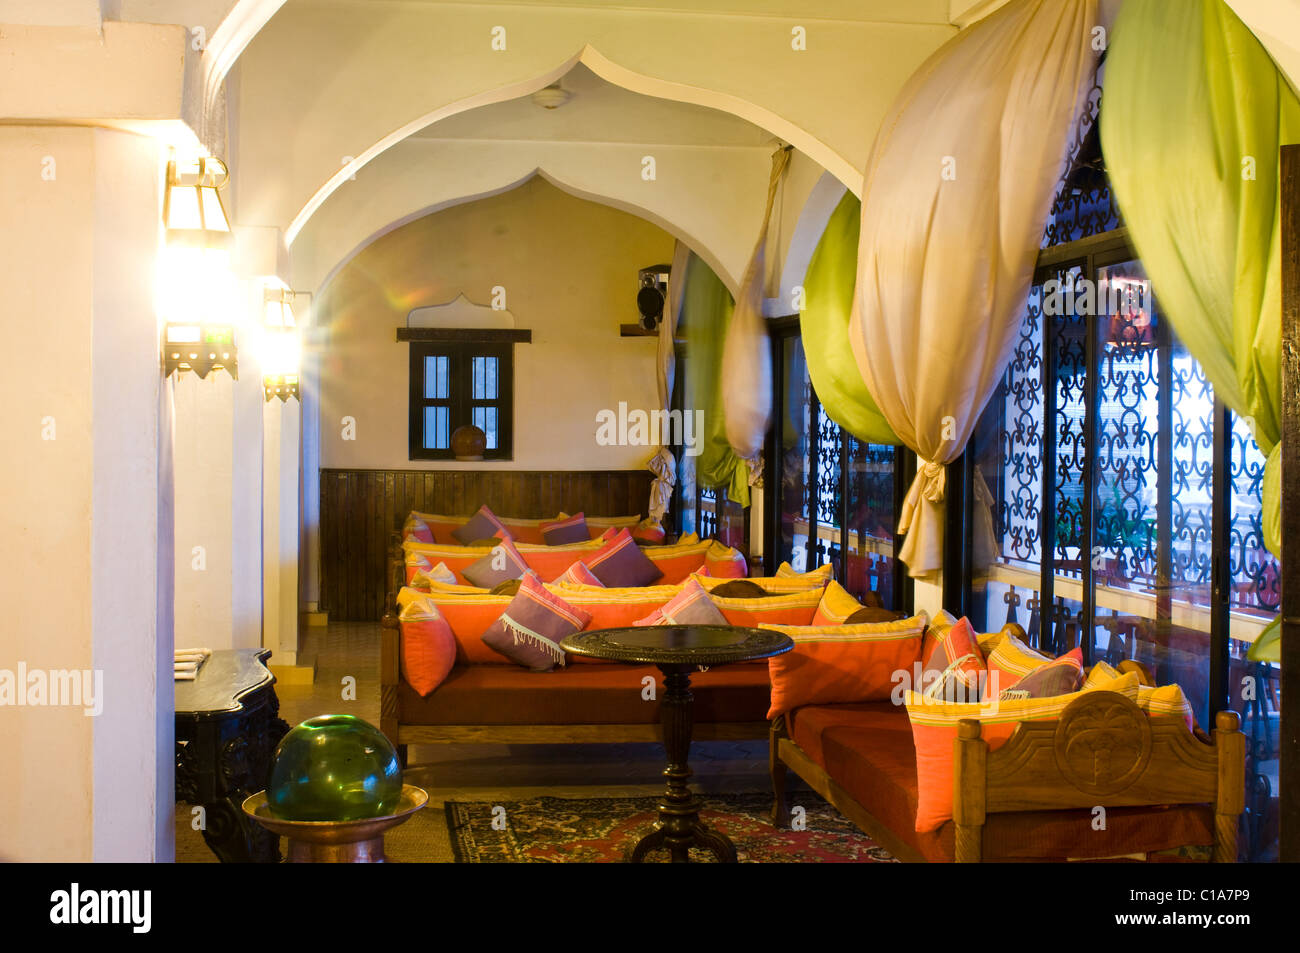 Lamu Palace Hotel, Old Stone Town, Lamu, Kenya Stock Photo